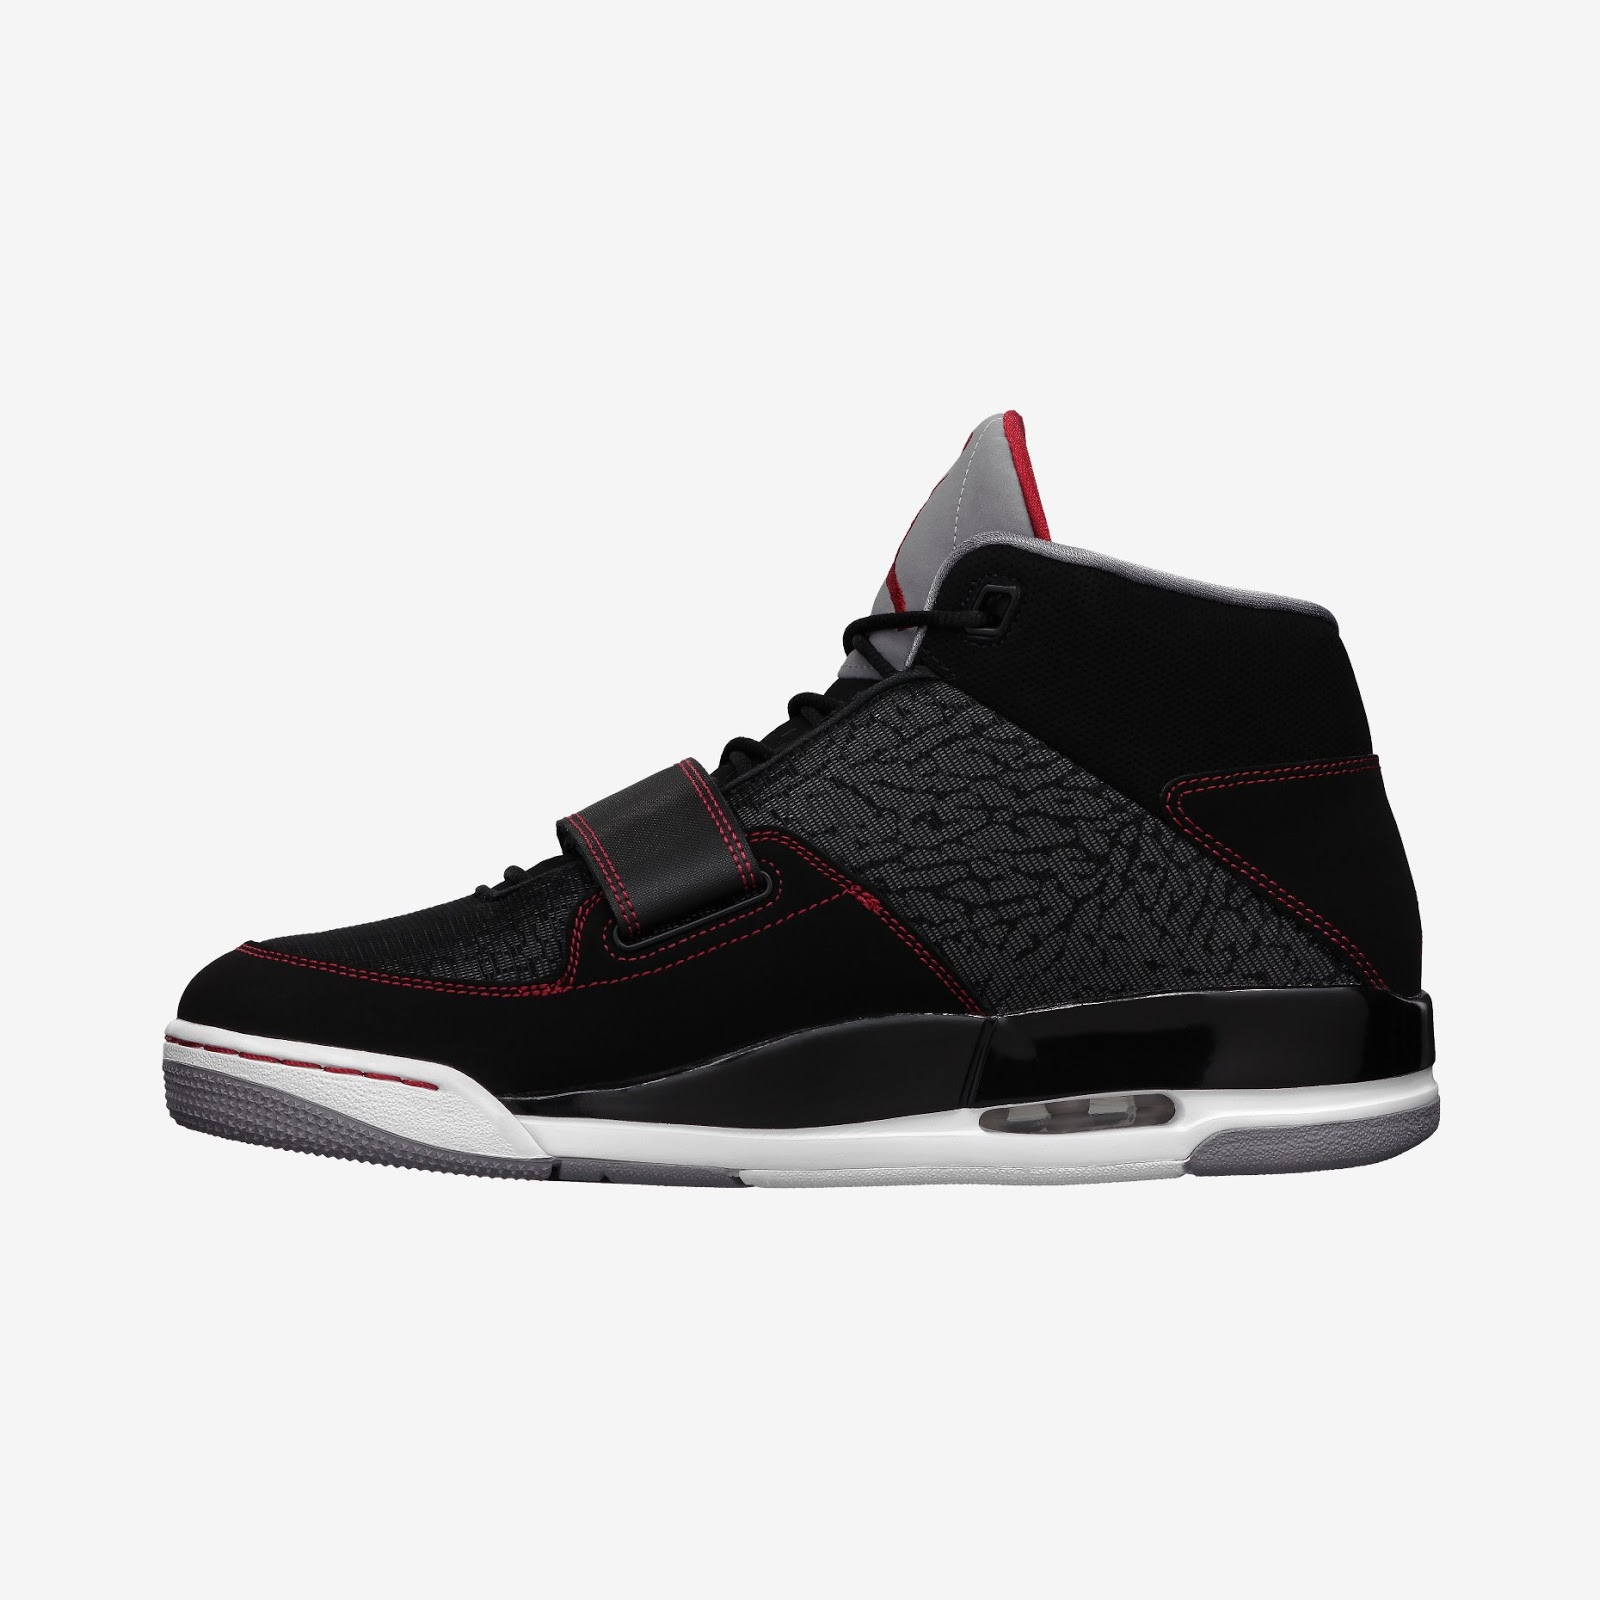 air jordan flight 2013 black friday